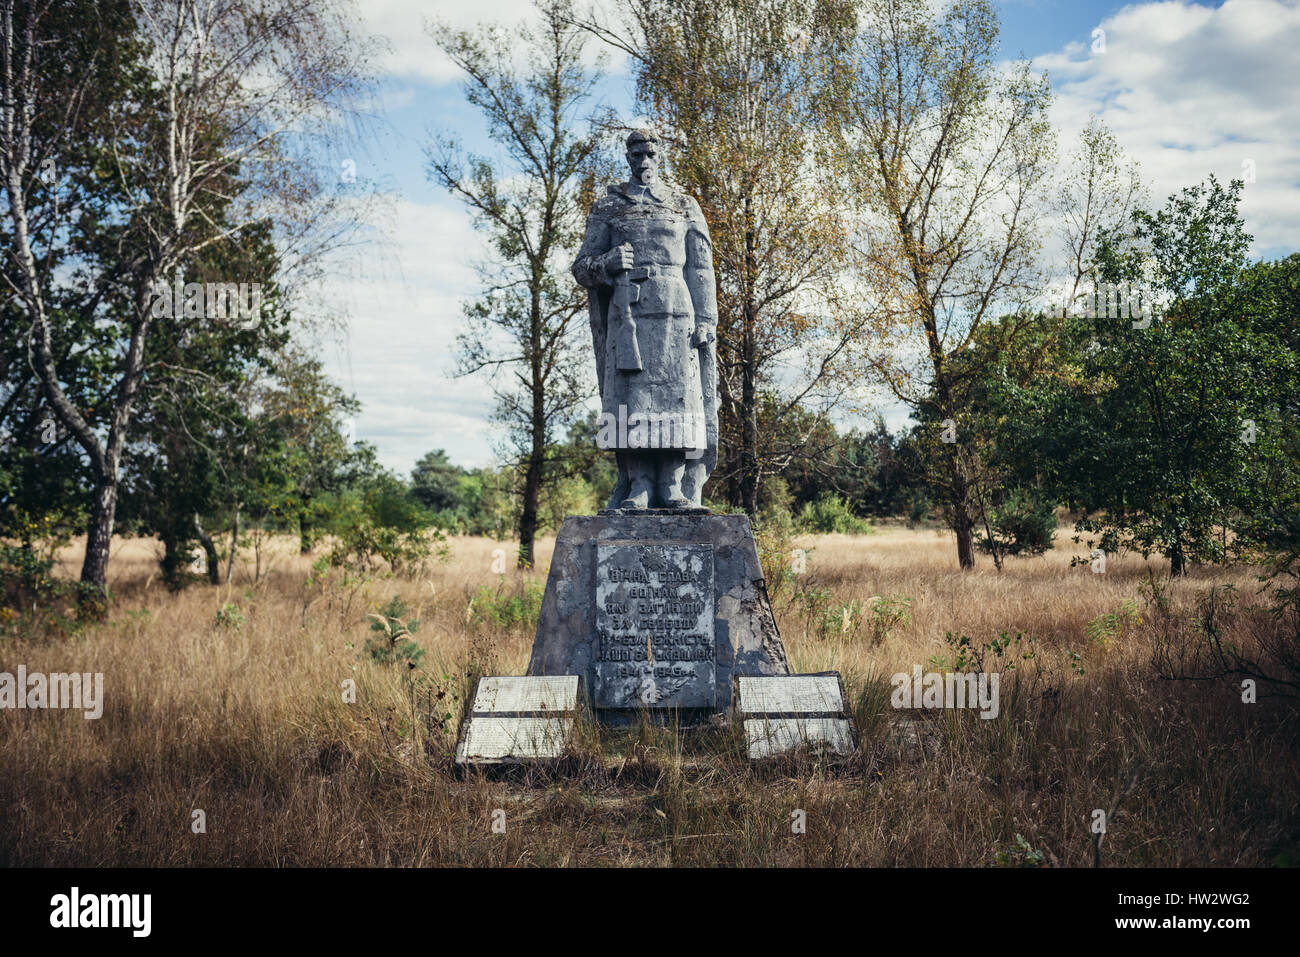 Second World War memorial in Mashevo abandoned village of Chernobyl Nuclear Power Plant Zone of Alienation around - Stock Image